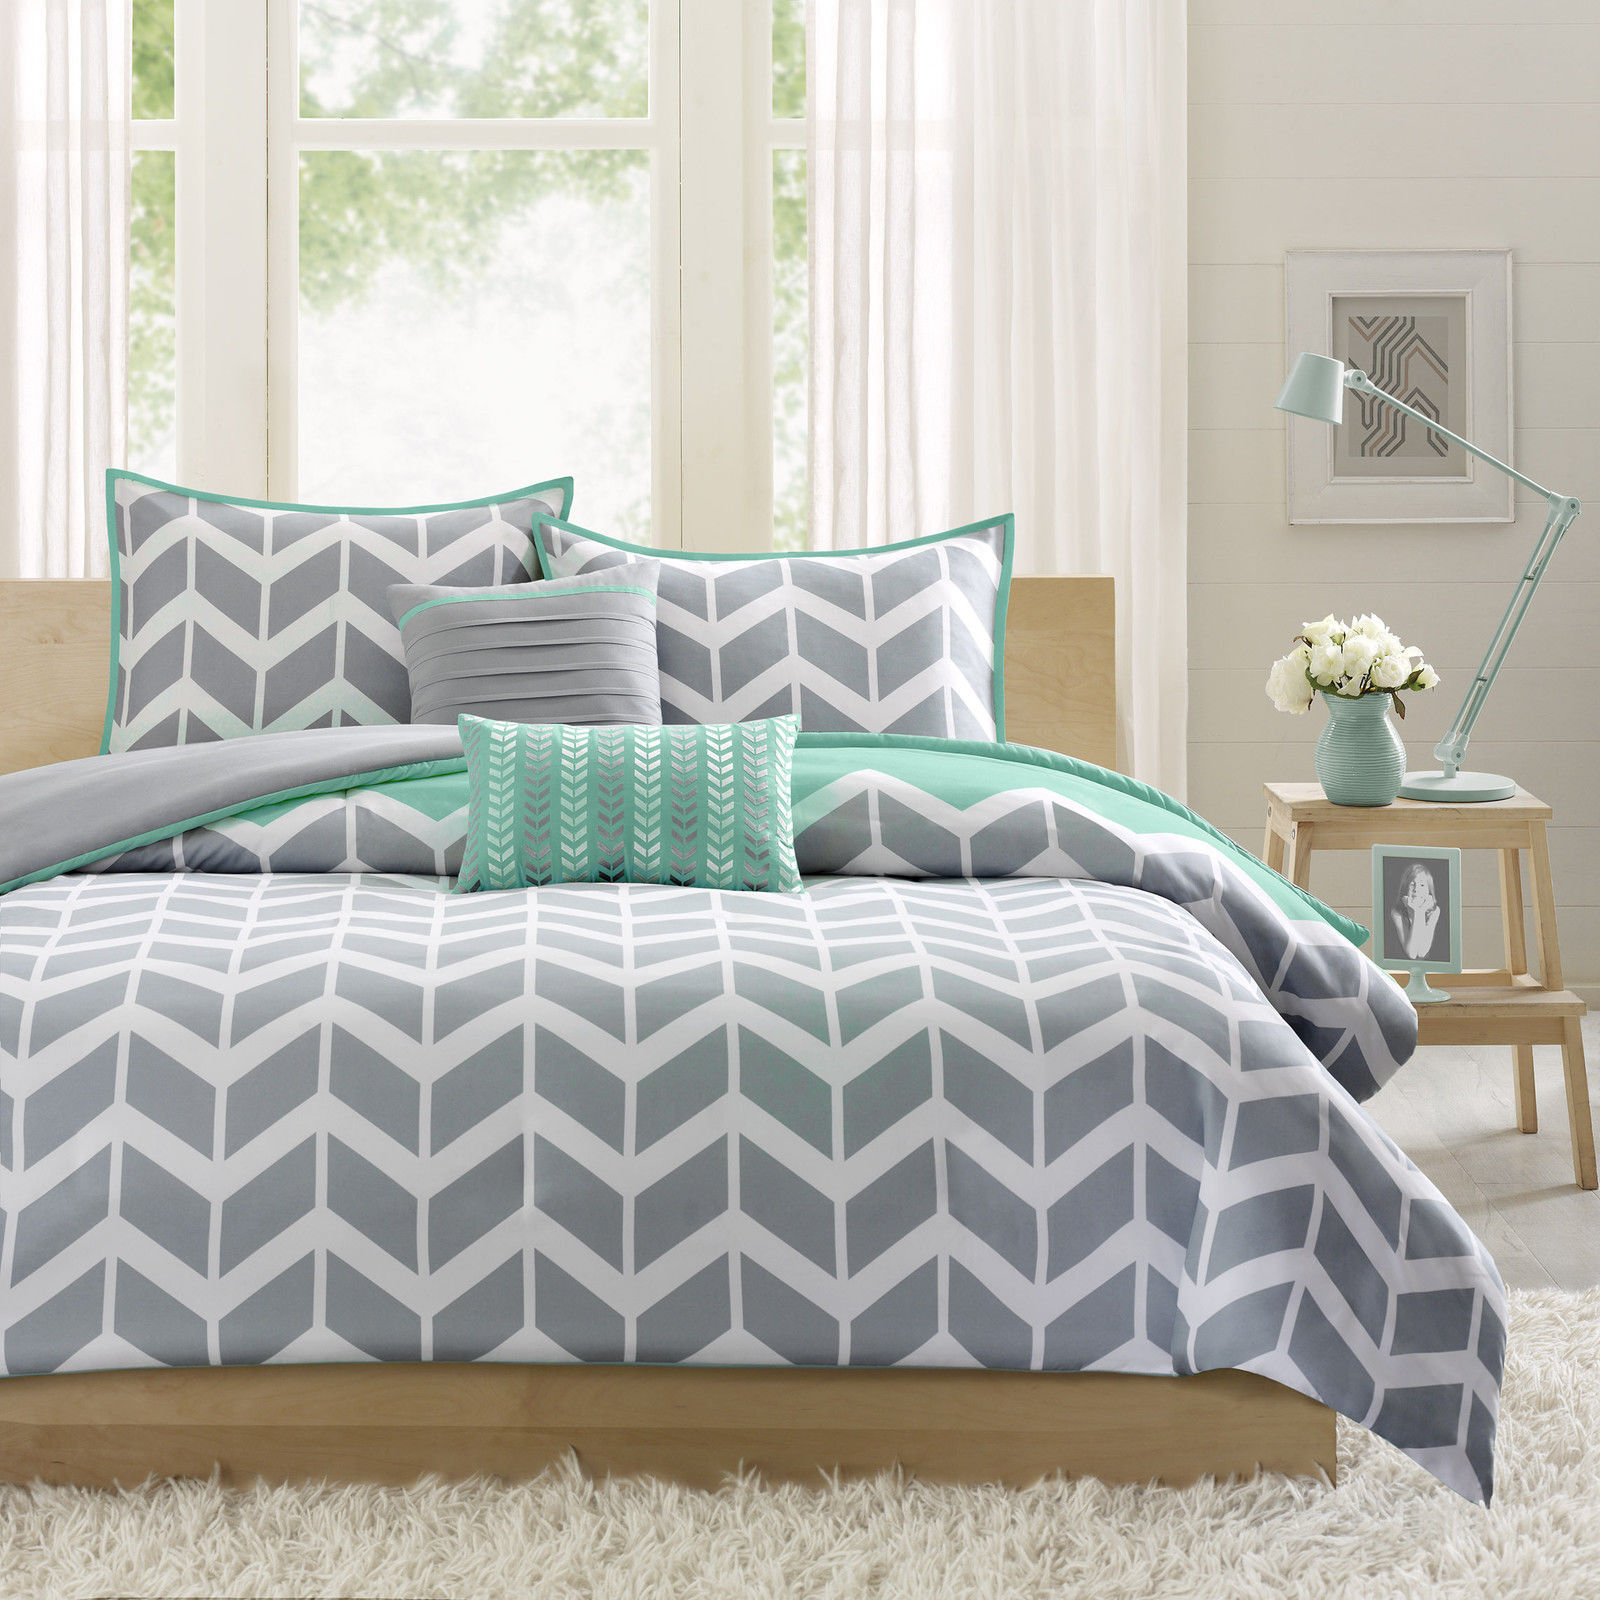 BEAUTIFUL grau TEAL Blau AQUA STRIPE MODERN CHEVRON SPORT COMFORTER SET NEW